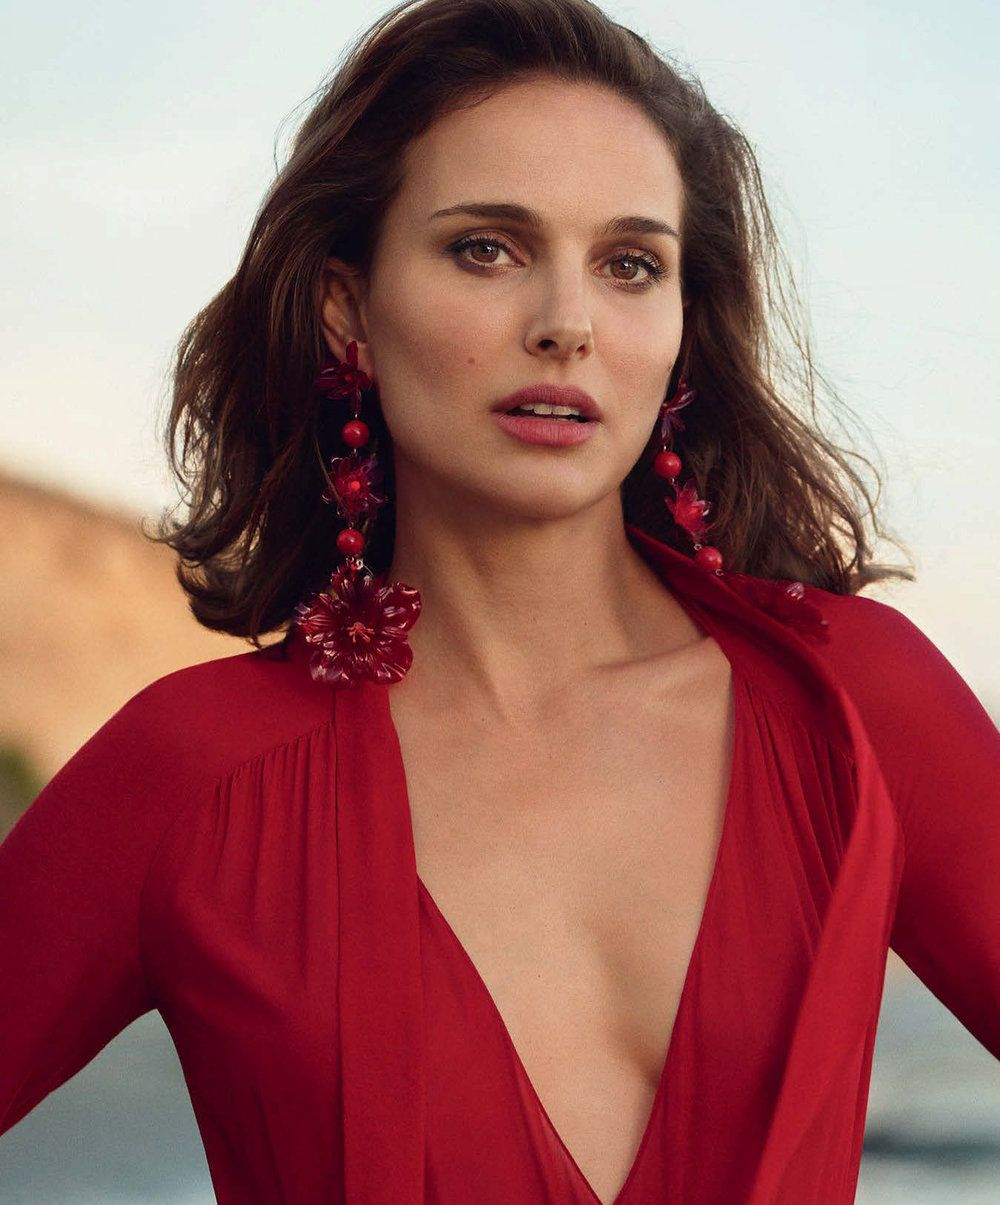 Natalie Portman Is A Red Hot Casual Mysterious Girl By